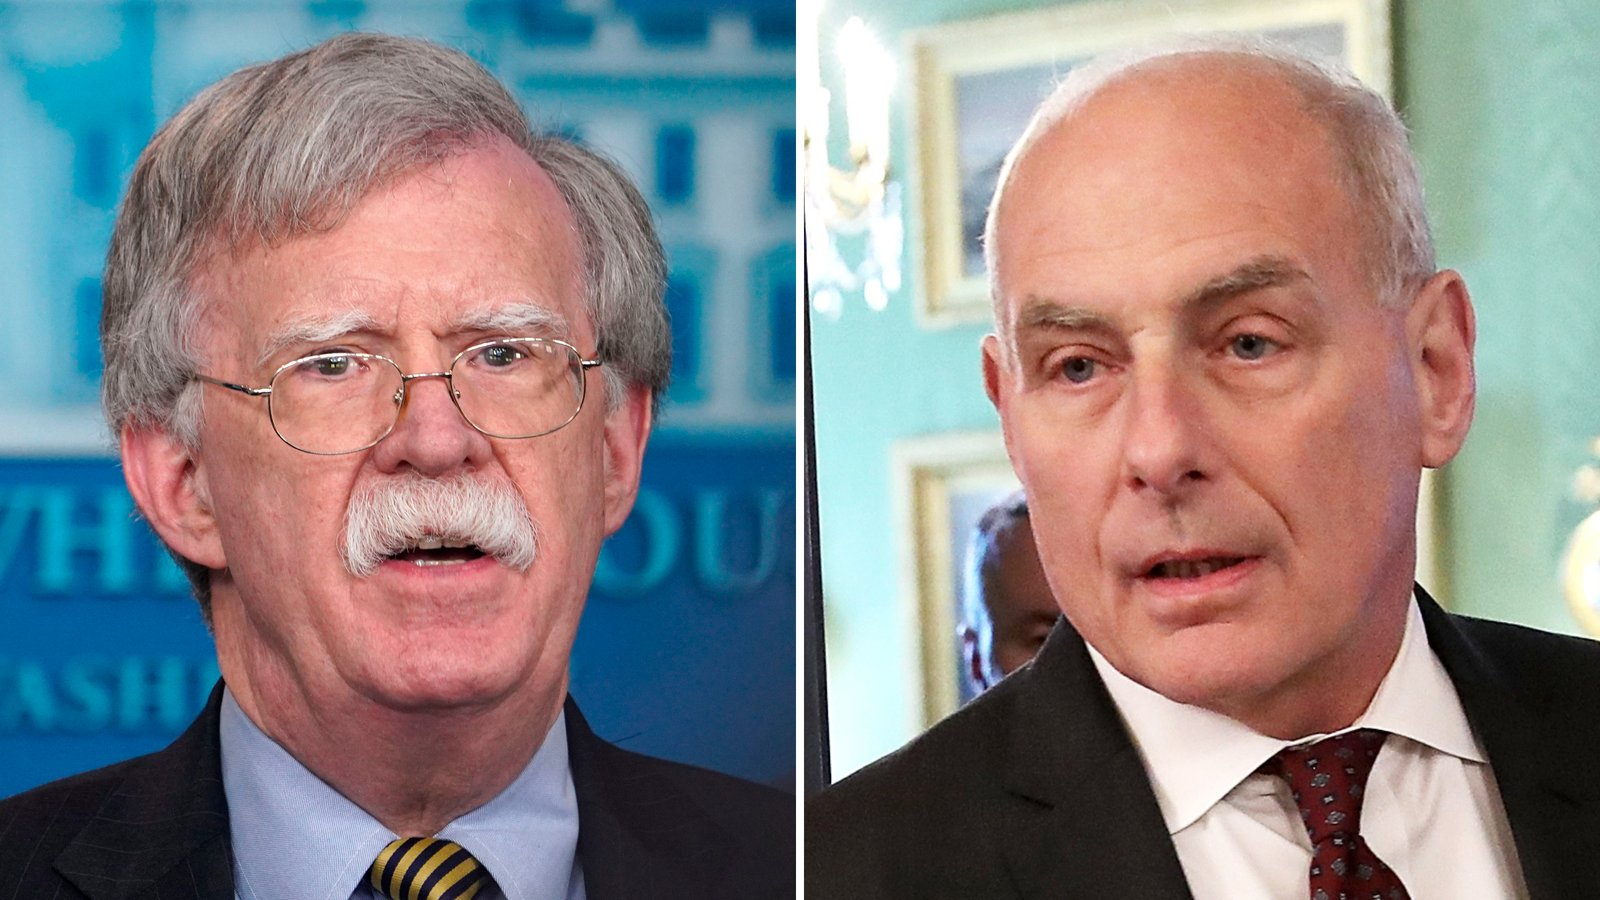 Ex-WH chief of staff Kelly says he believes Bolton's account of Ukraine allegation